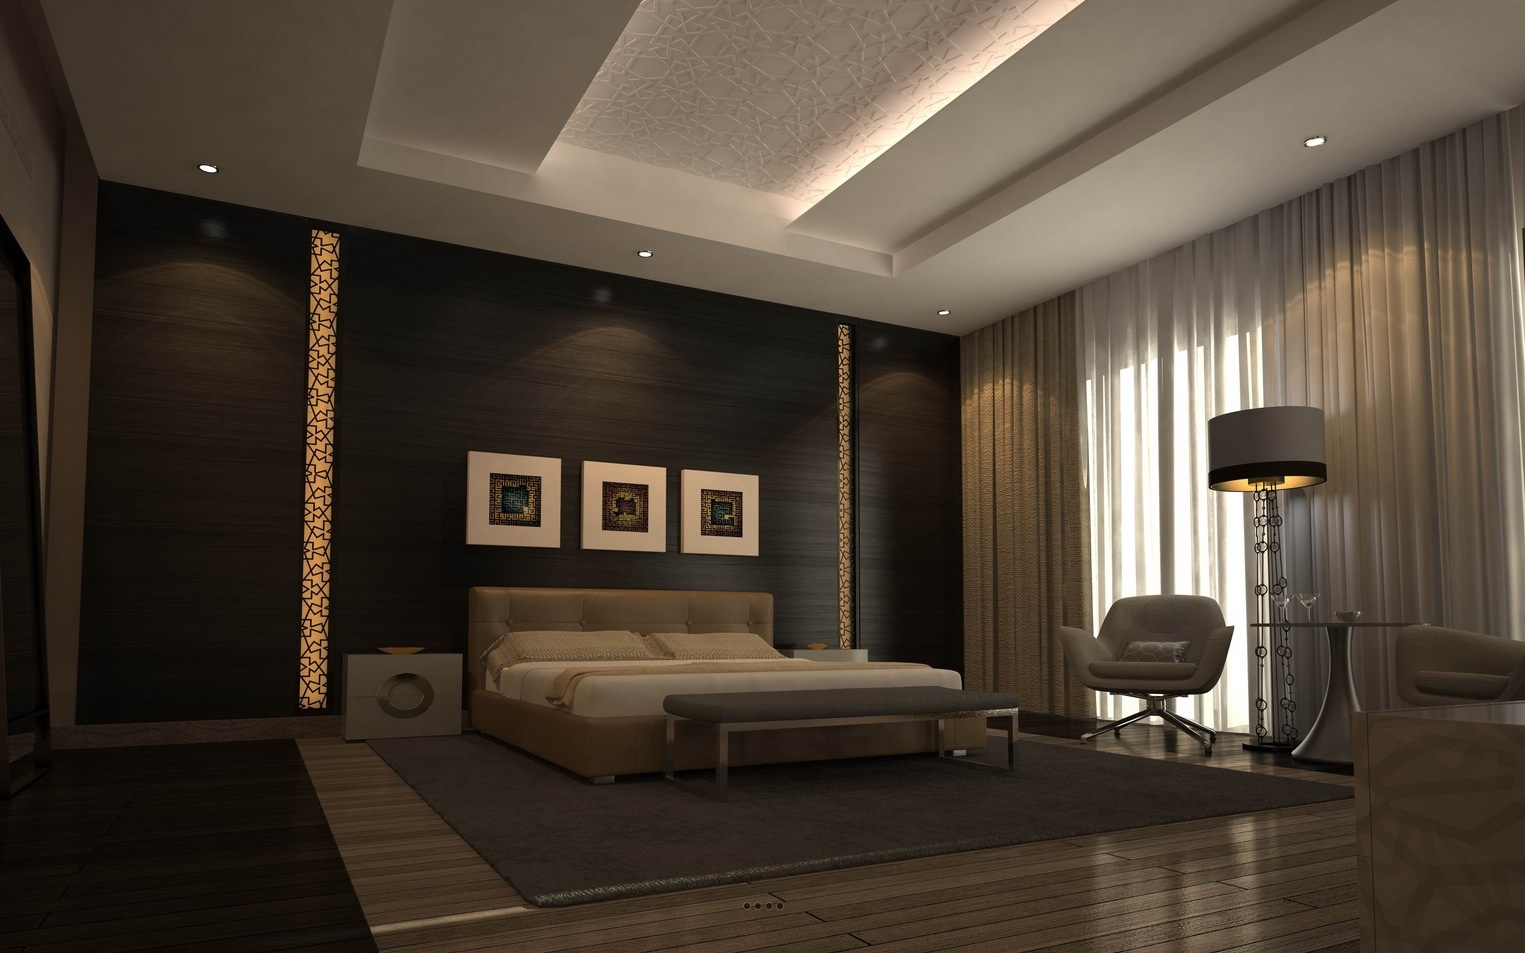 Bedroom design design - Bedrooms designs ...